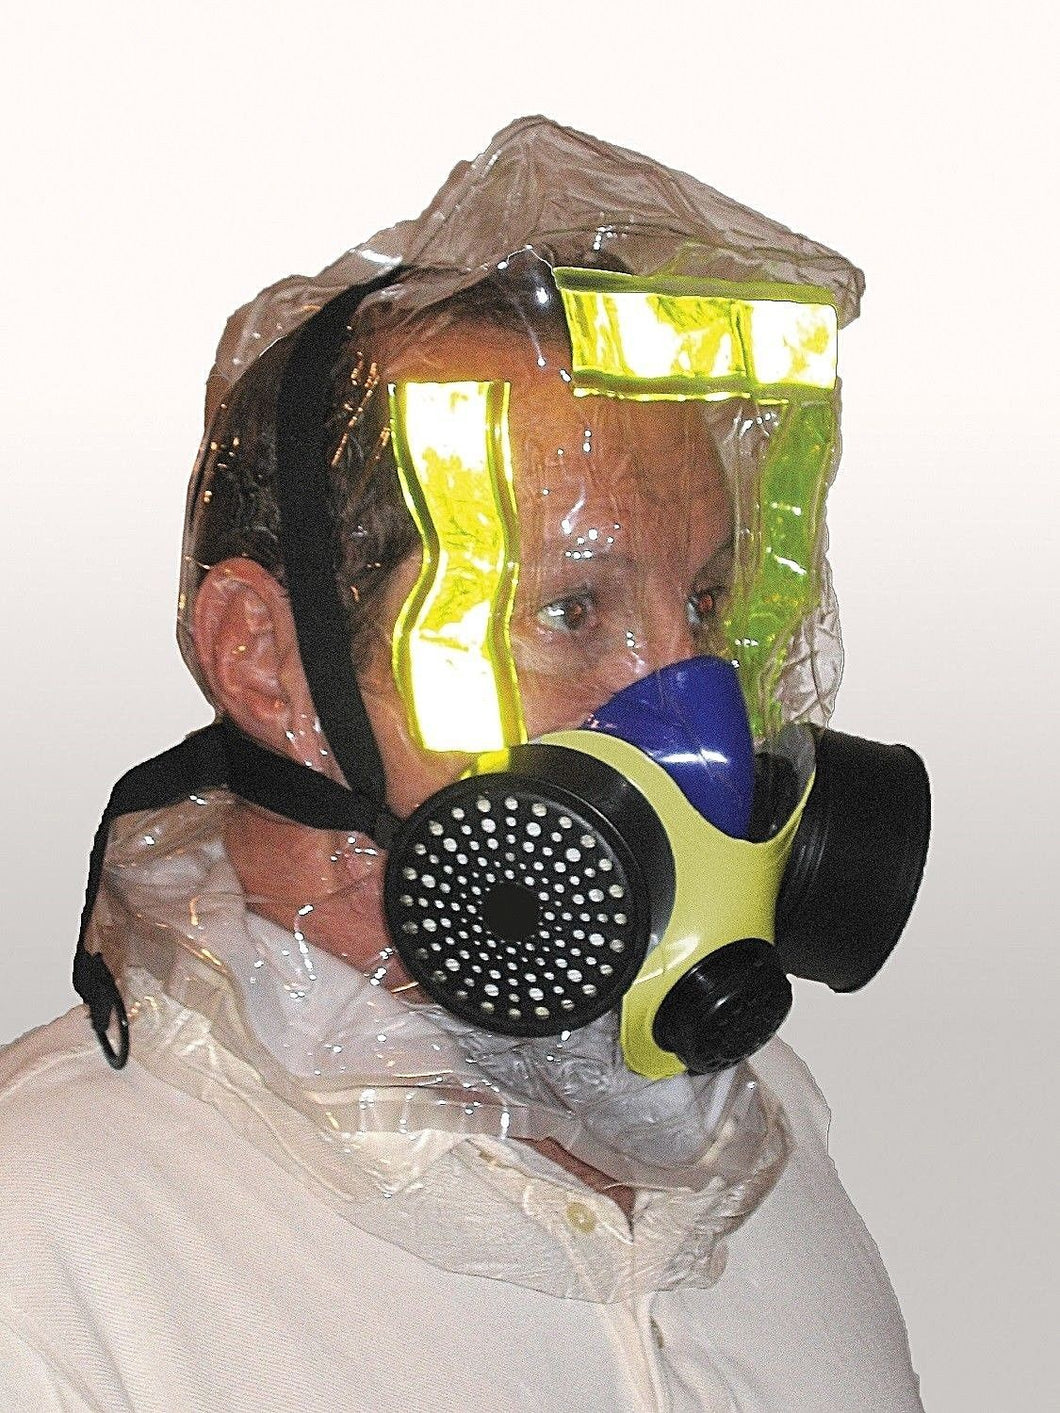 iEVAC SMOKE/FIRE/TOXIC GAS ESCAPE HOOD